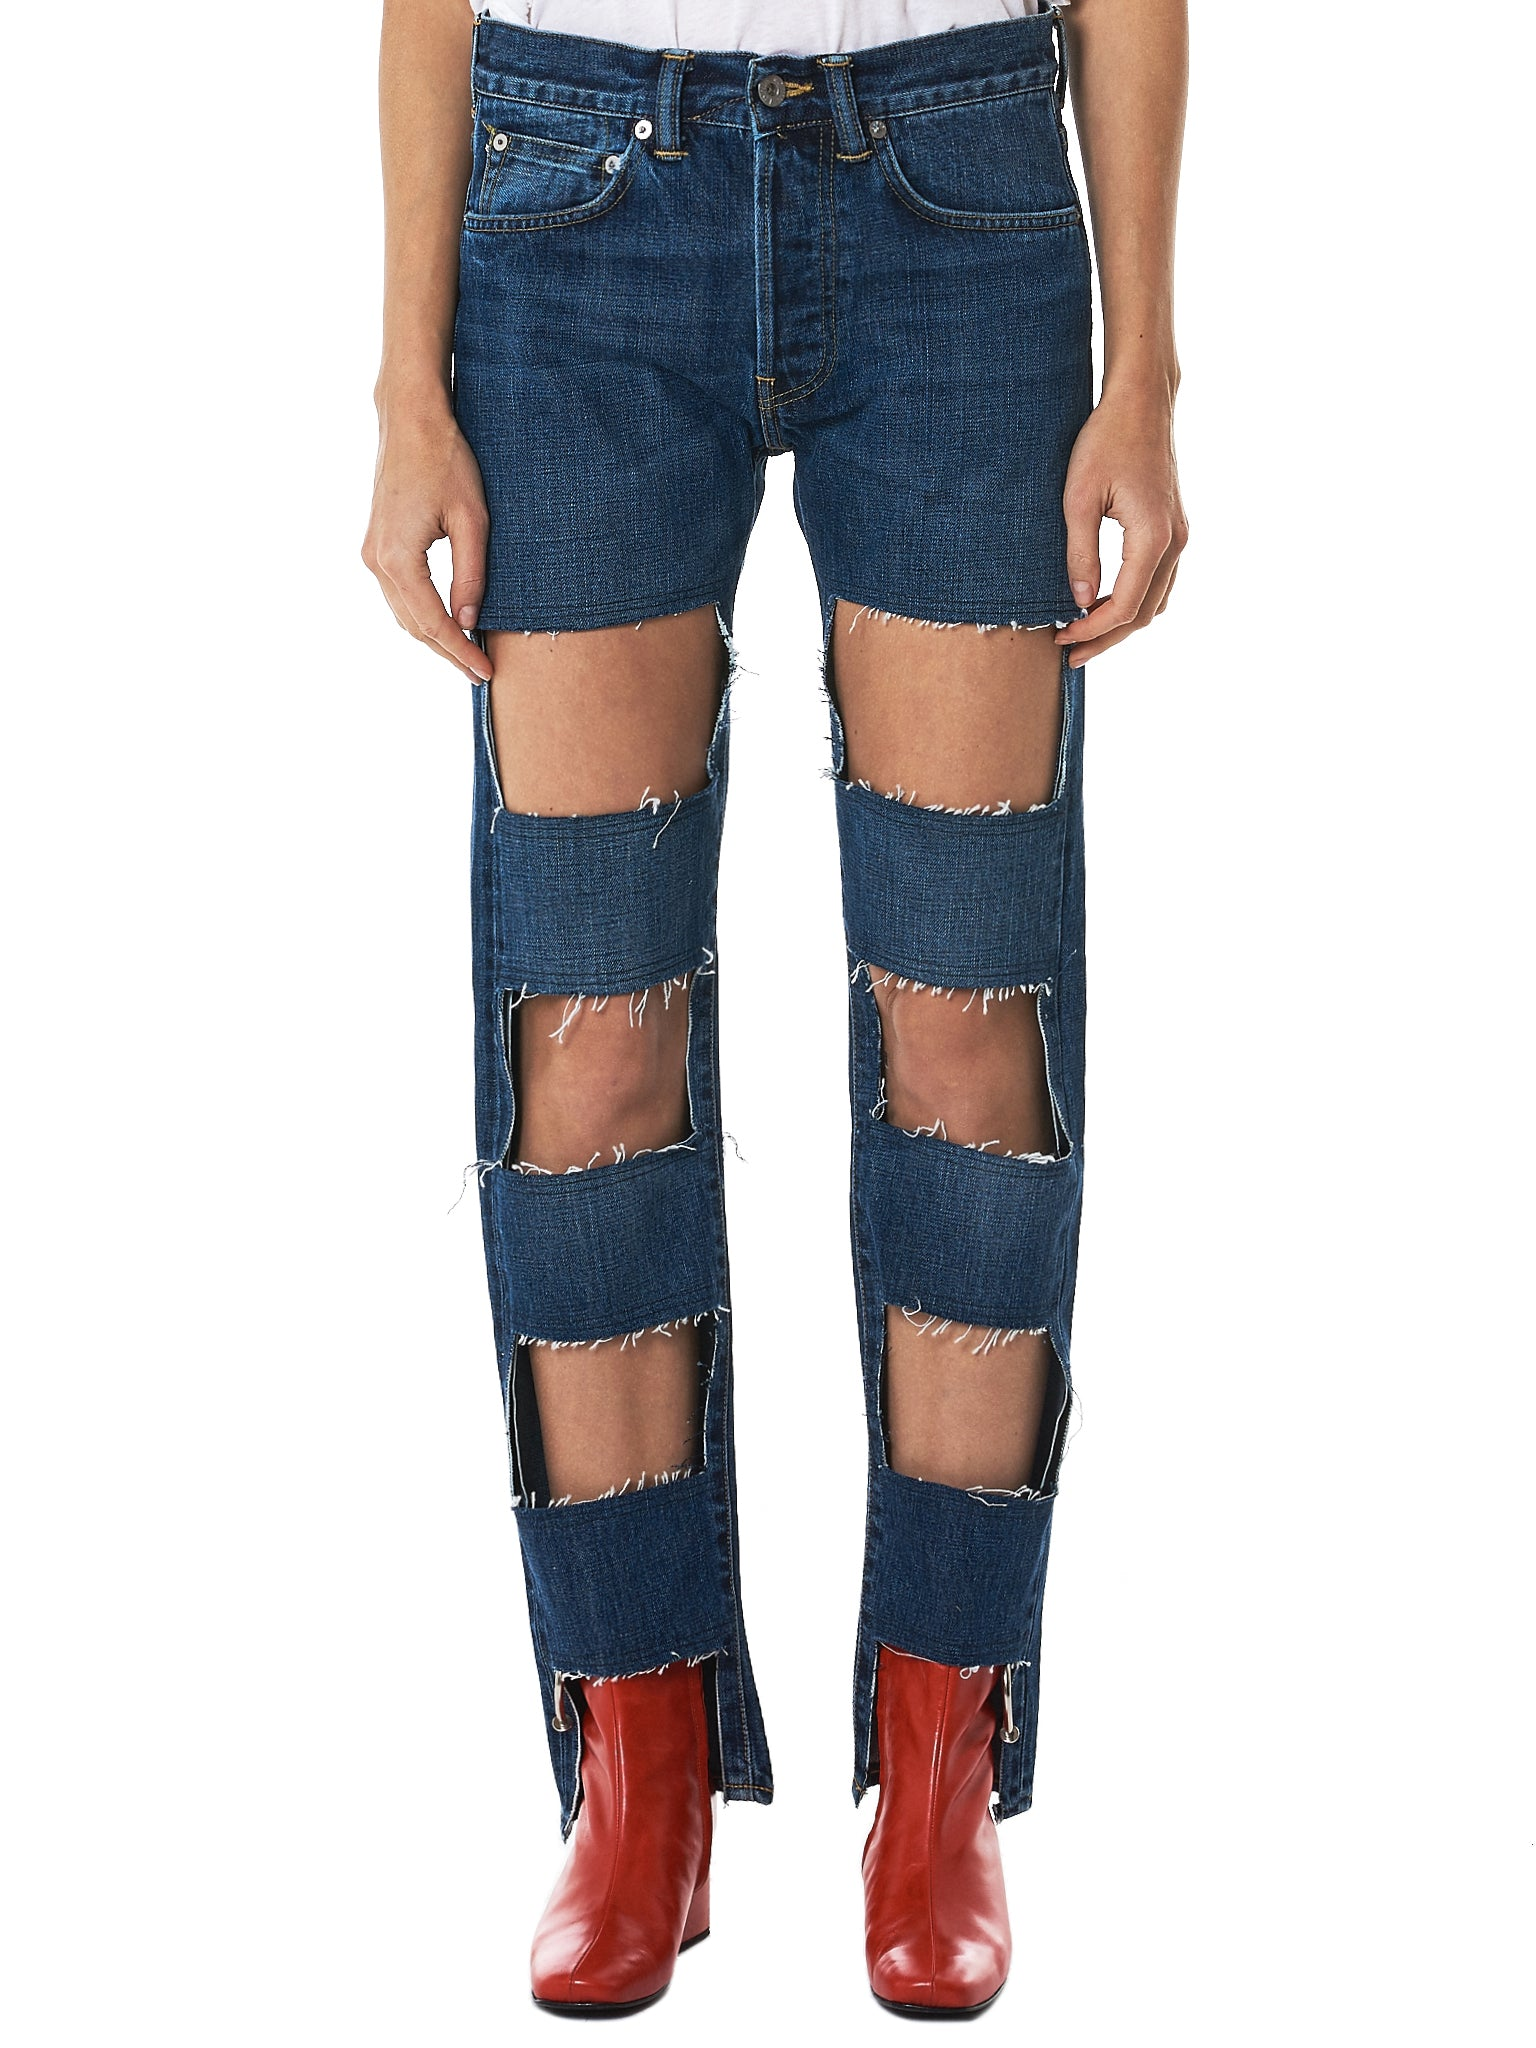 Lutz Huelle Cutout Denim Pants - Hlorenzo Front